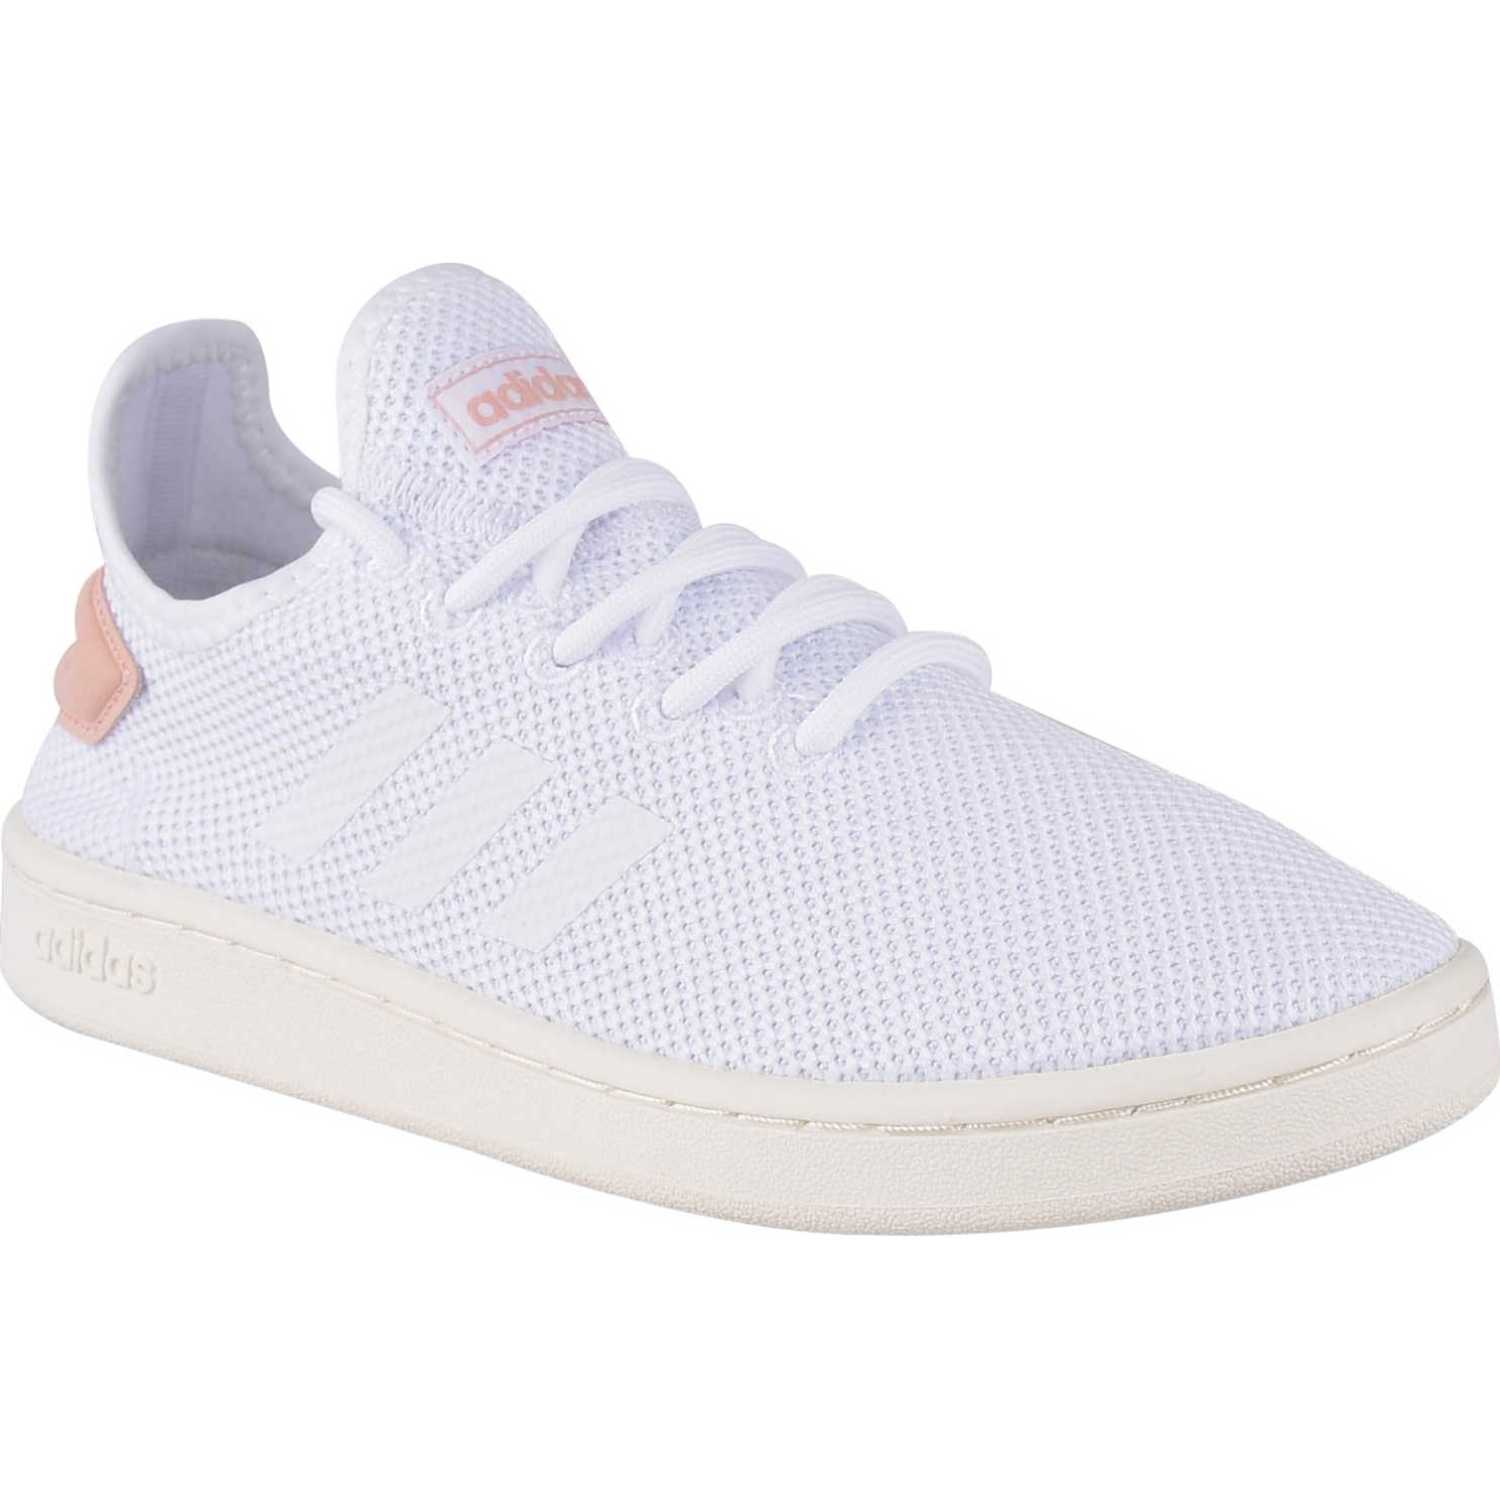 Adidas Court Adapt Blanco / Melon Walking